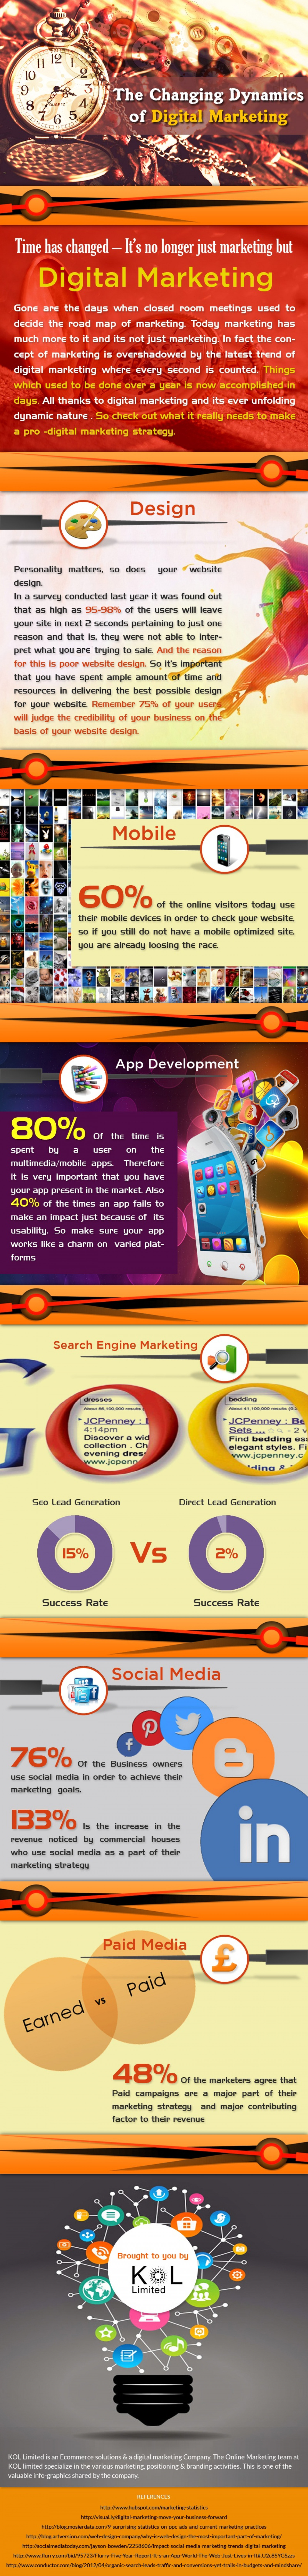 The Changing Dynamics of Digital Marketing Infographic